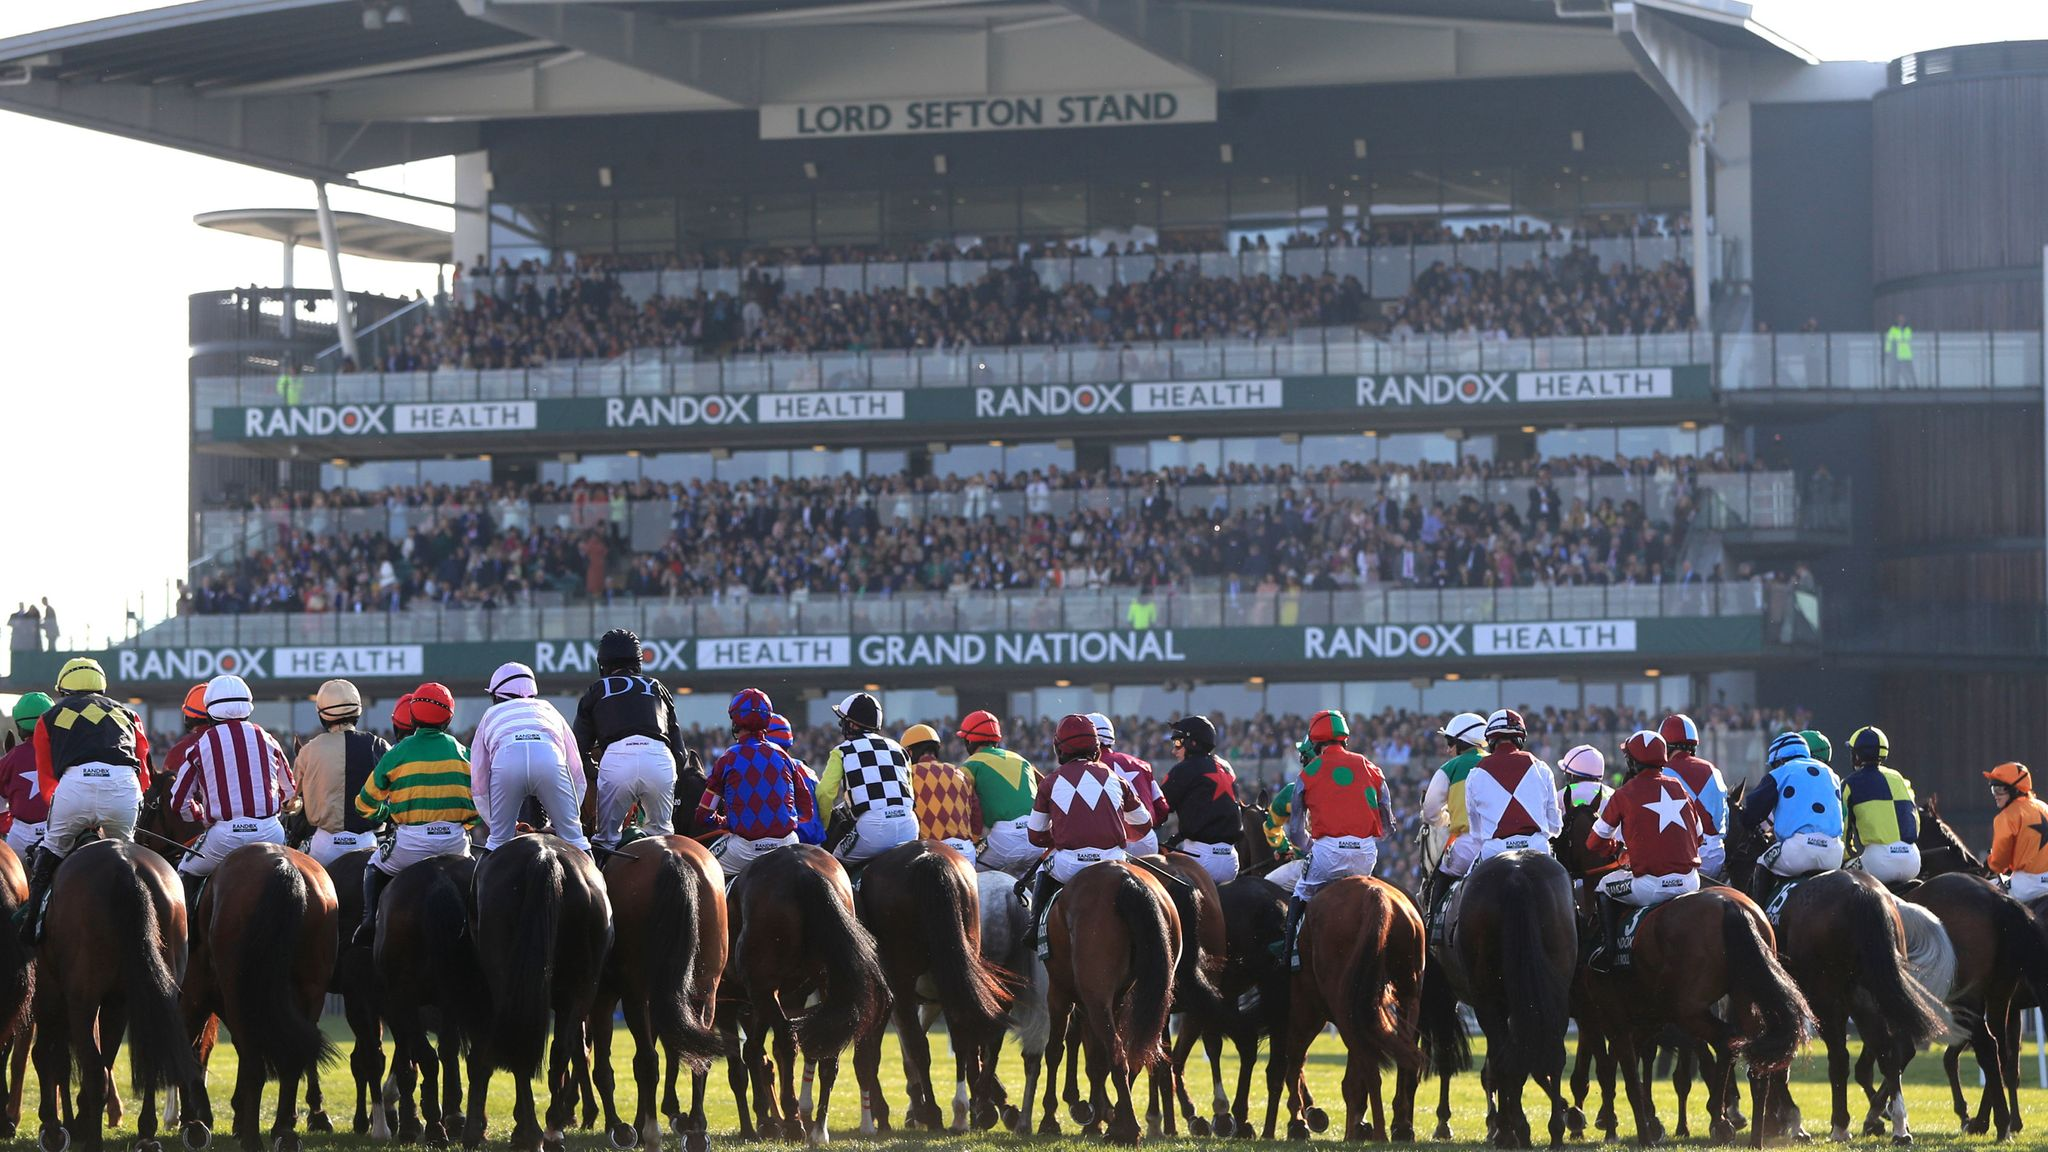 Jockey Club To Donate 10,000 2021 Grand National Tickets to NHS